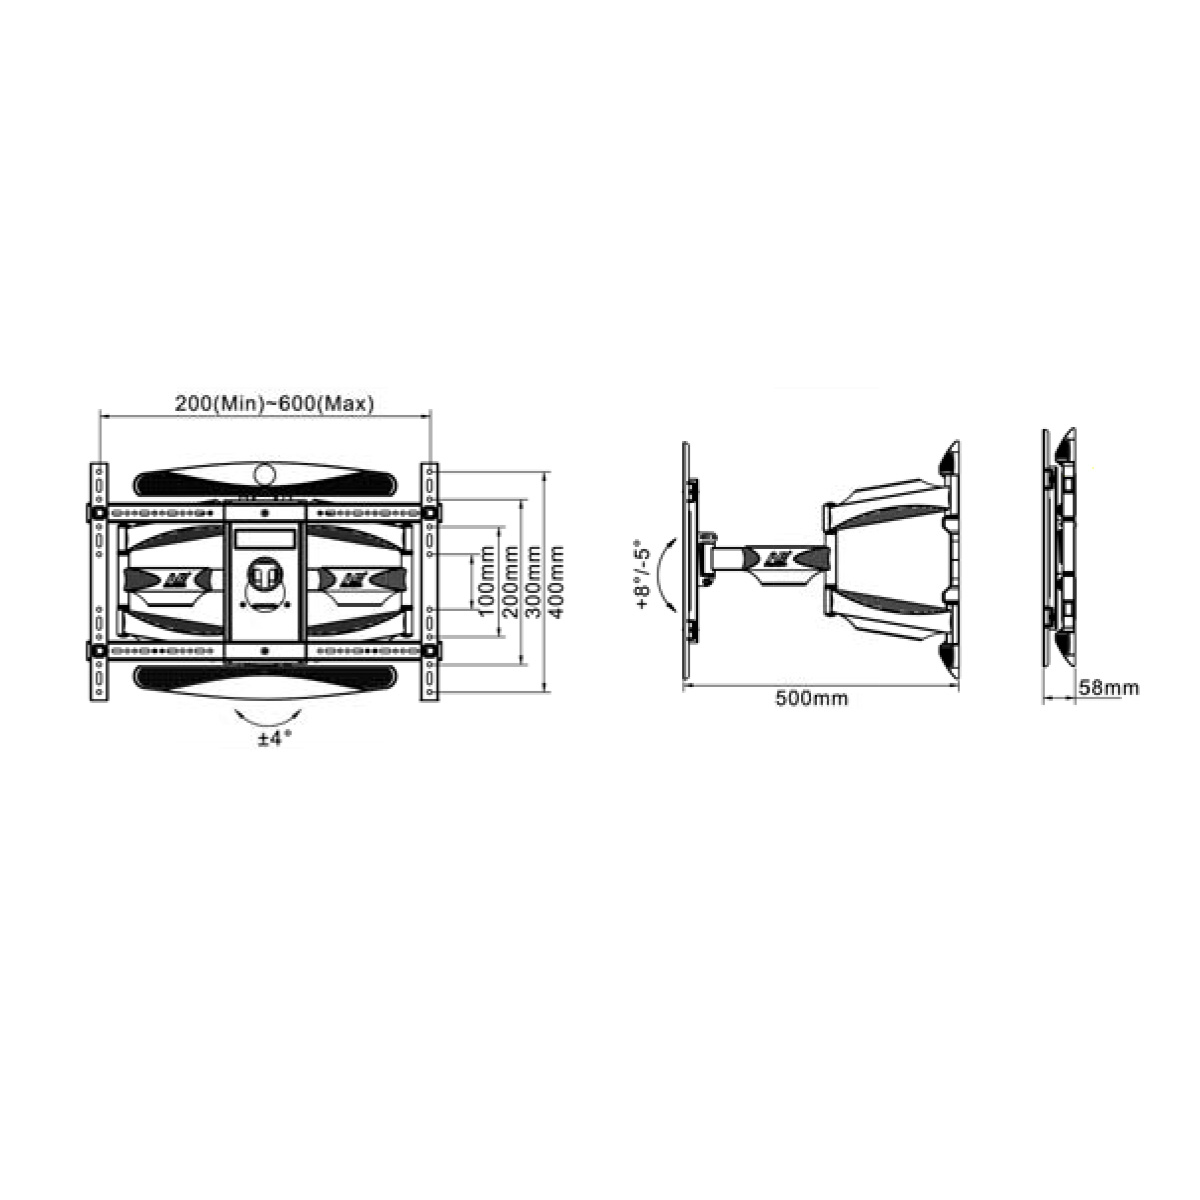 F150 Tow Mirrors Diagram also Ford Fusion Backup Camera Wiring Diagram also Mack Ch613 Wiring Diagram further 99 Subaru Forester Interior Diagram in addition 2004 Ford F650 Headlight Diagrams. on discussion c3724 ds555392